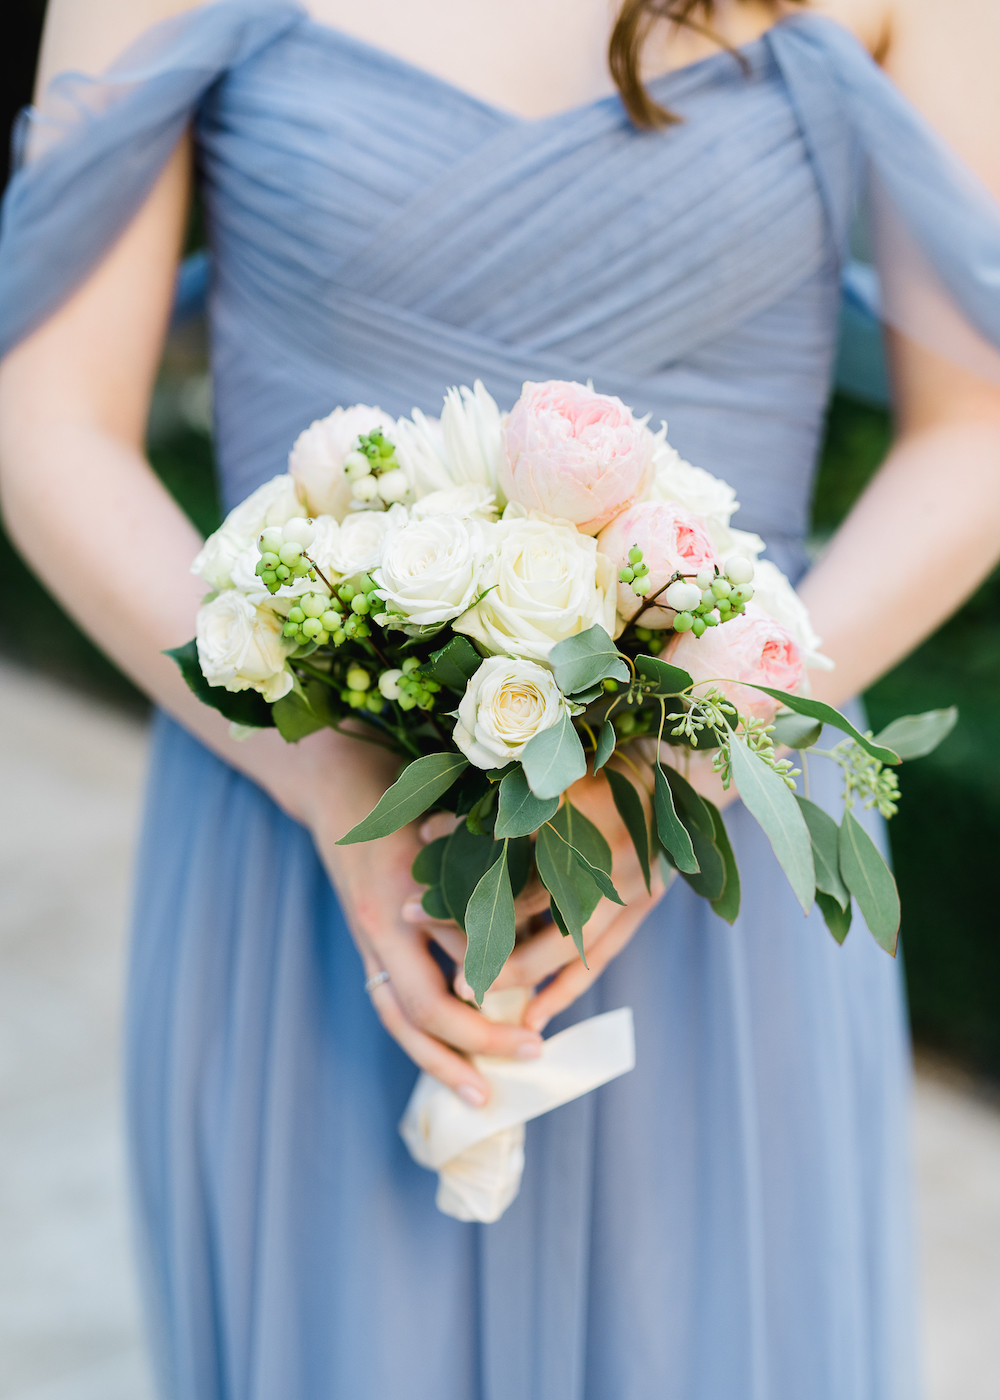 Blue bridesmaid dress for a Paris wedding